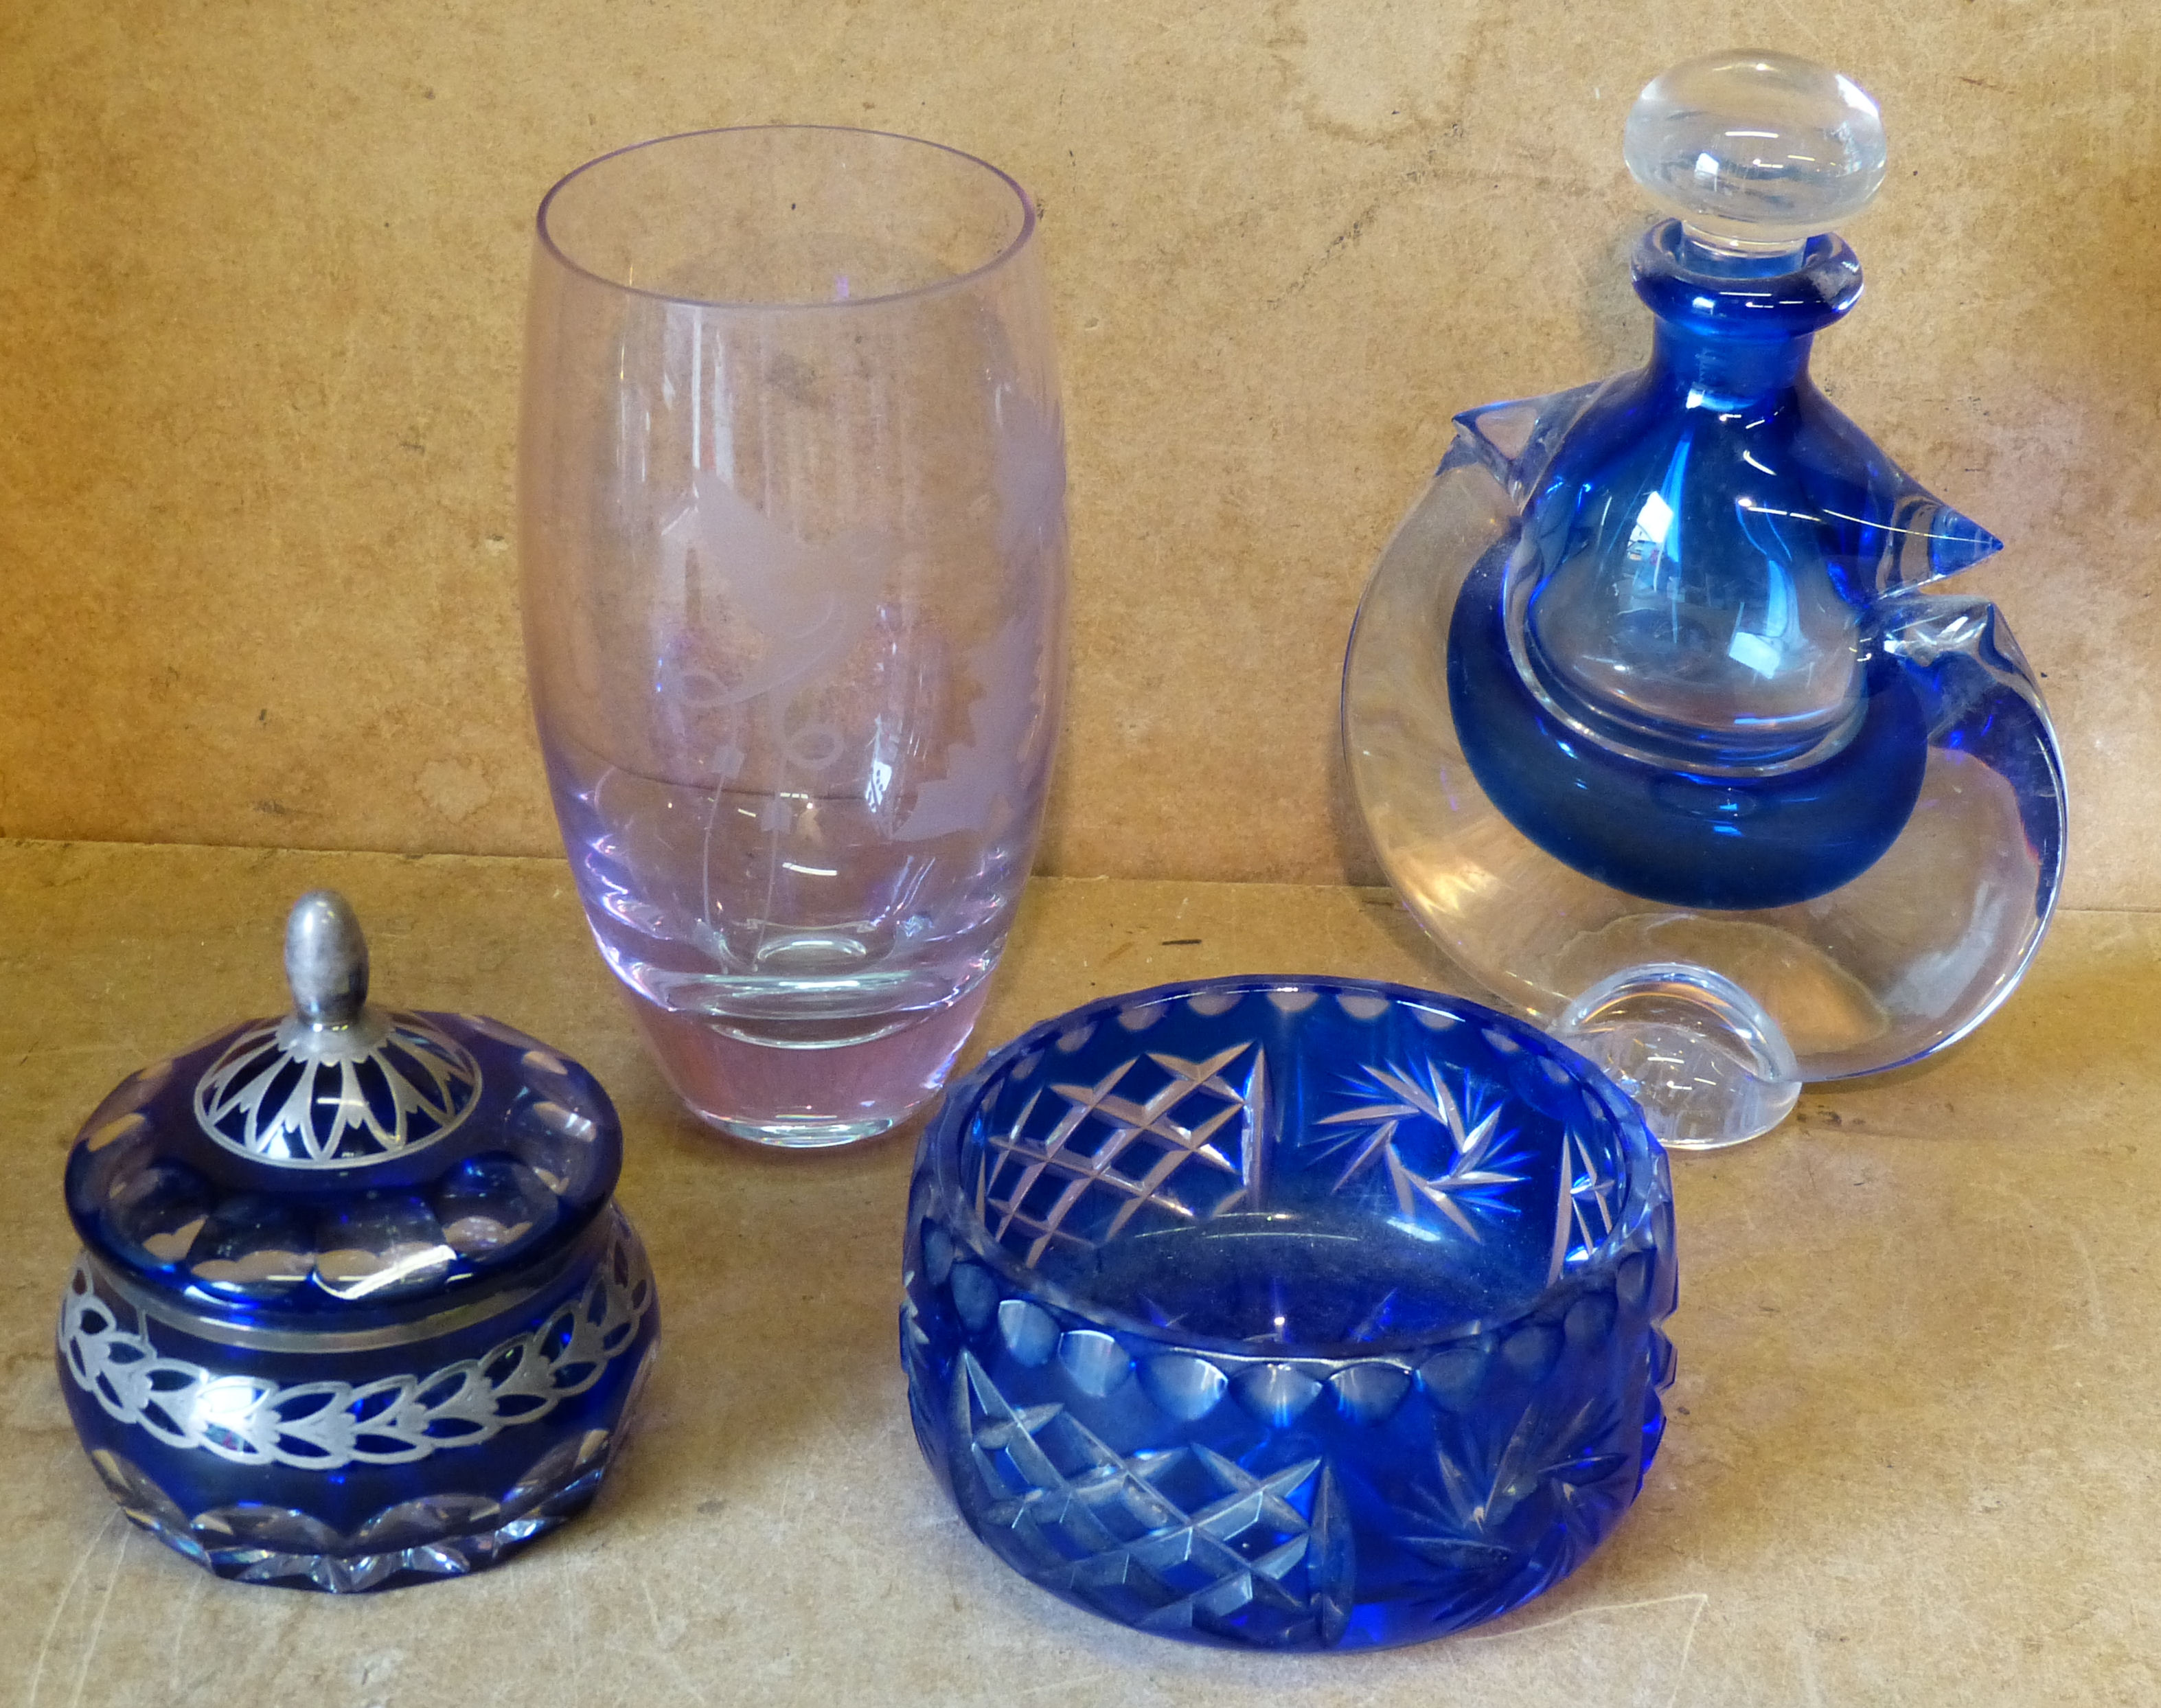 A Clear and Blue Glass Scent Bottle with stopper, a blue glass small round bowl